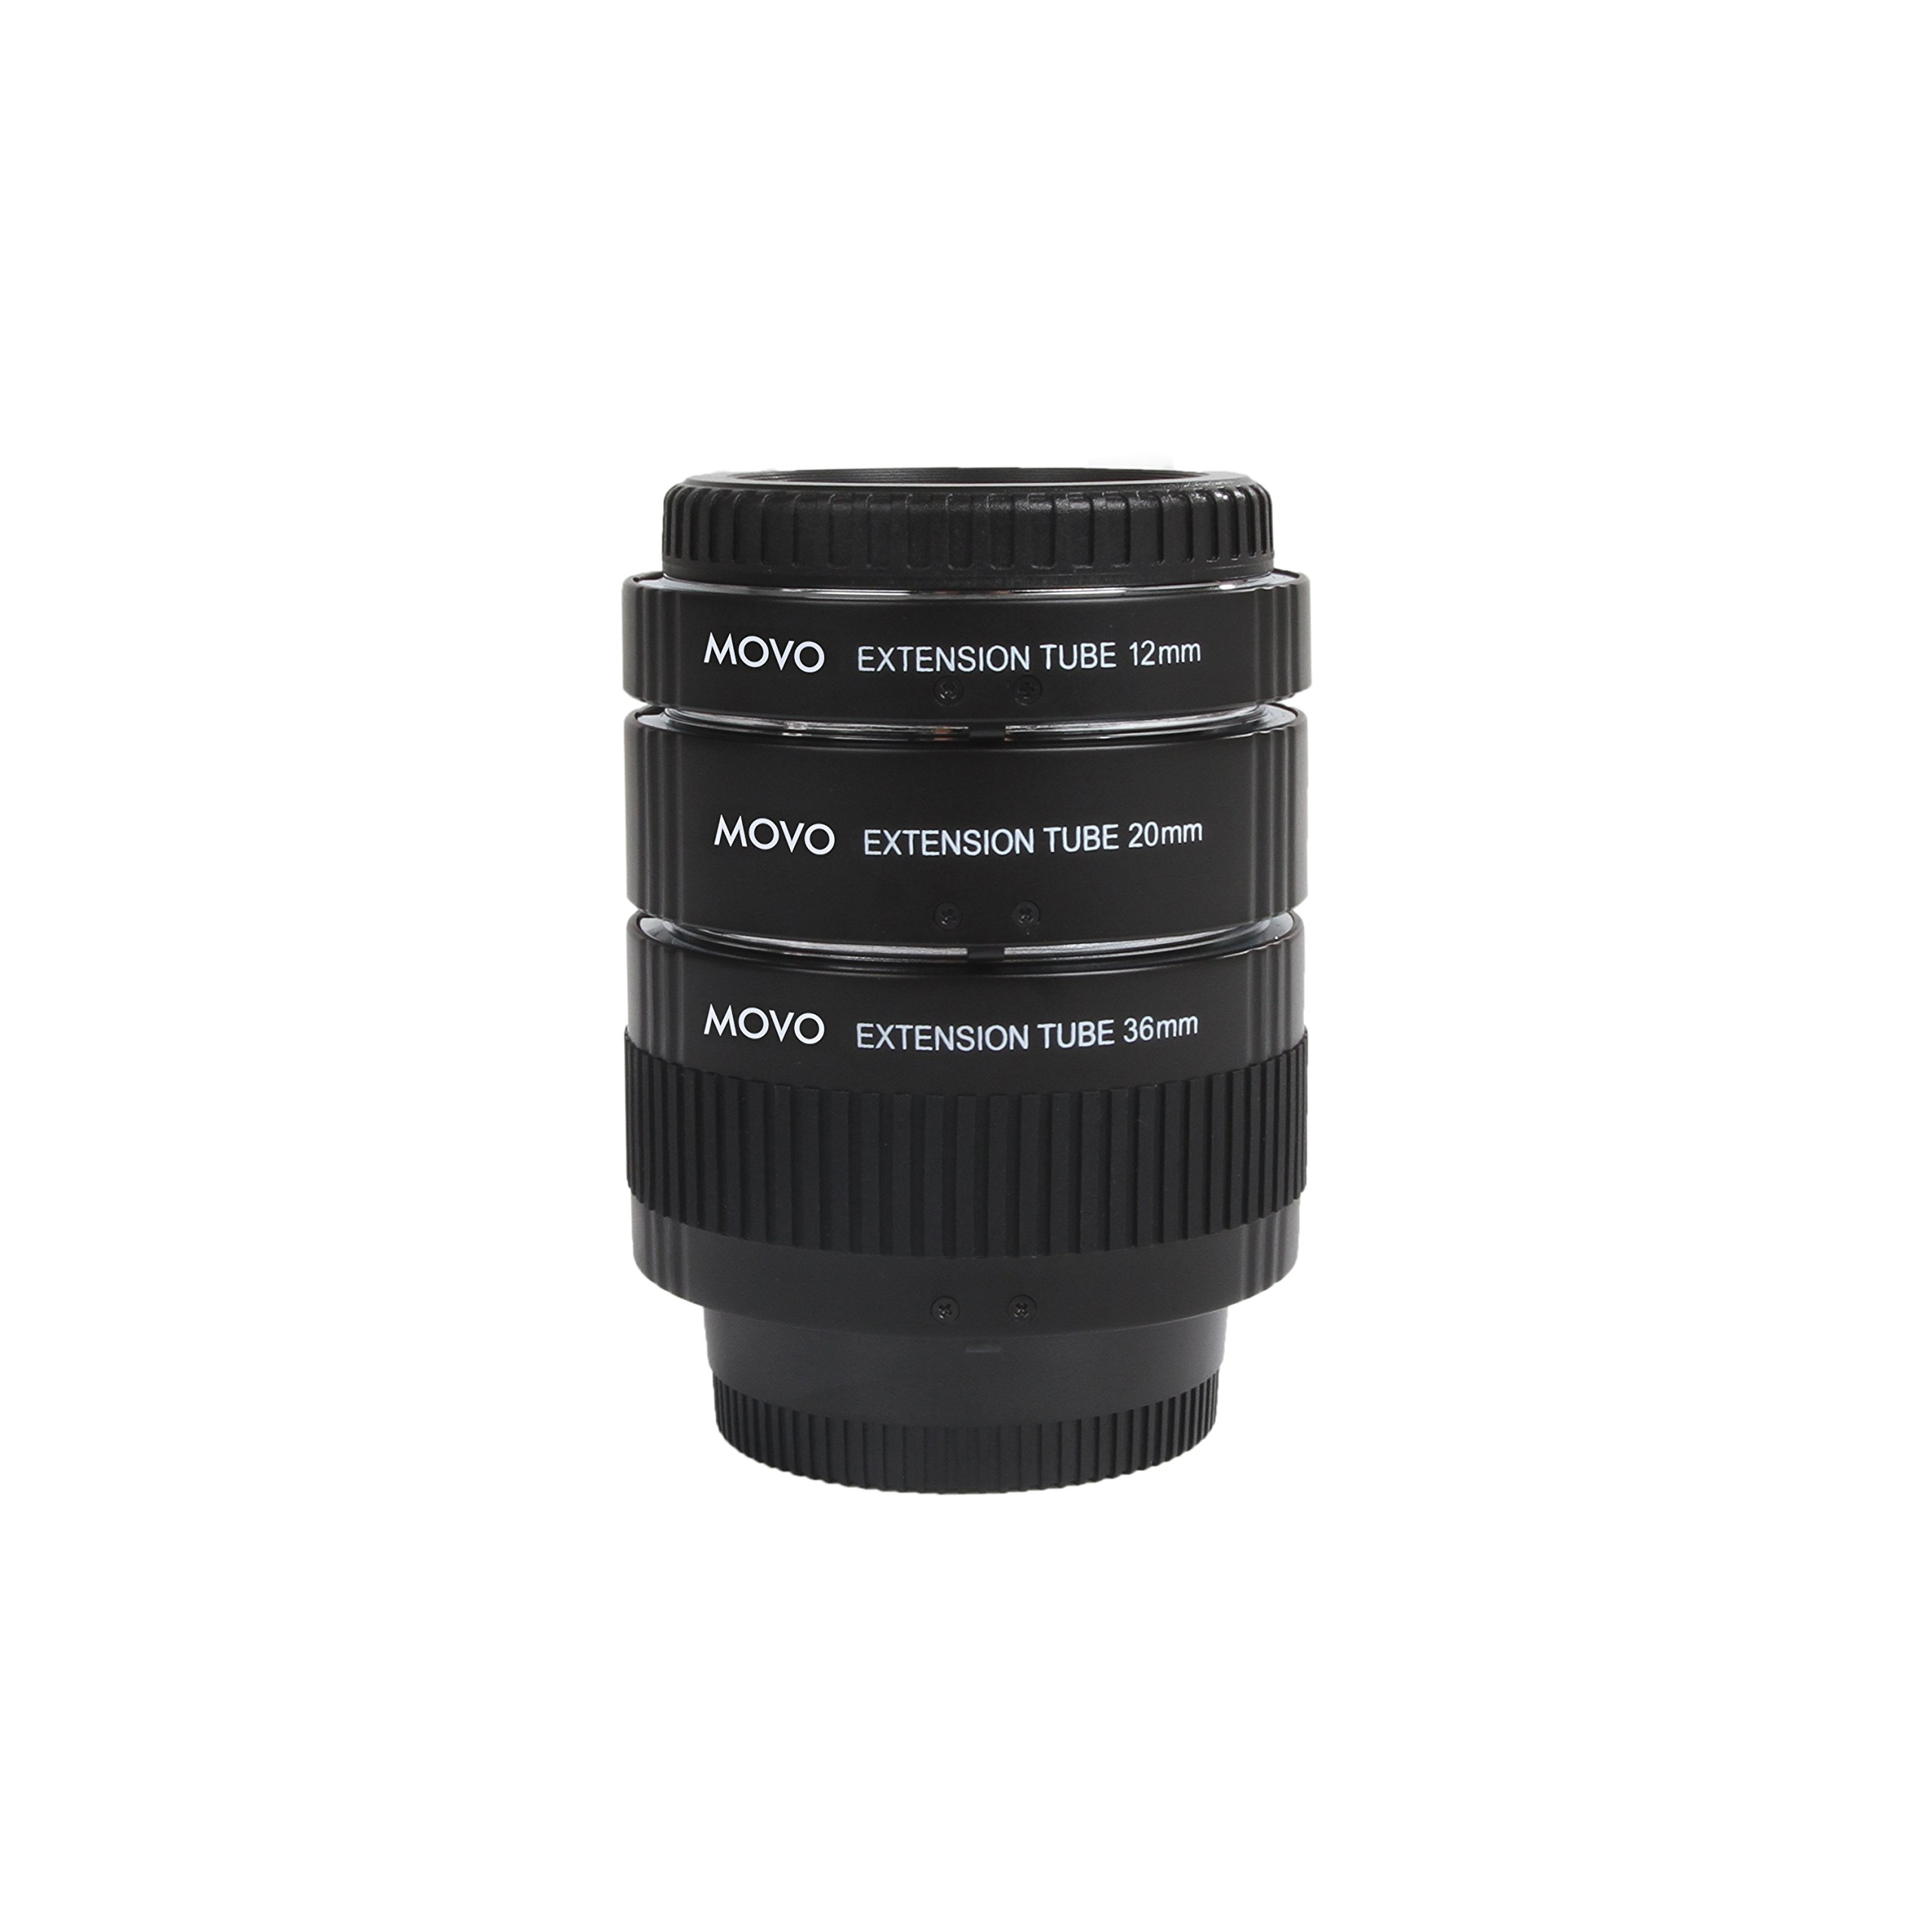 Movo Photo AF Macro Extension Tube Set for Nikon DSLR Camera with 12mm, 20mm & 36mm Tubes (Metal Mount) by Movo (Image #5)